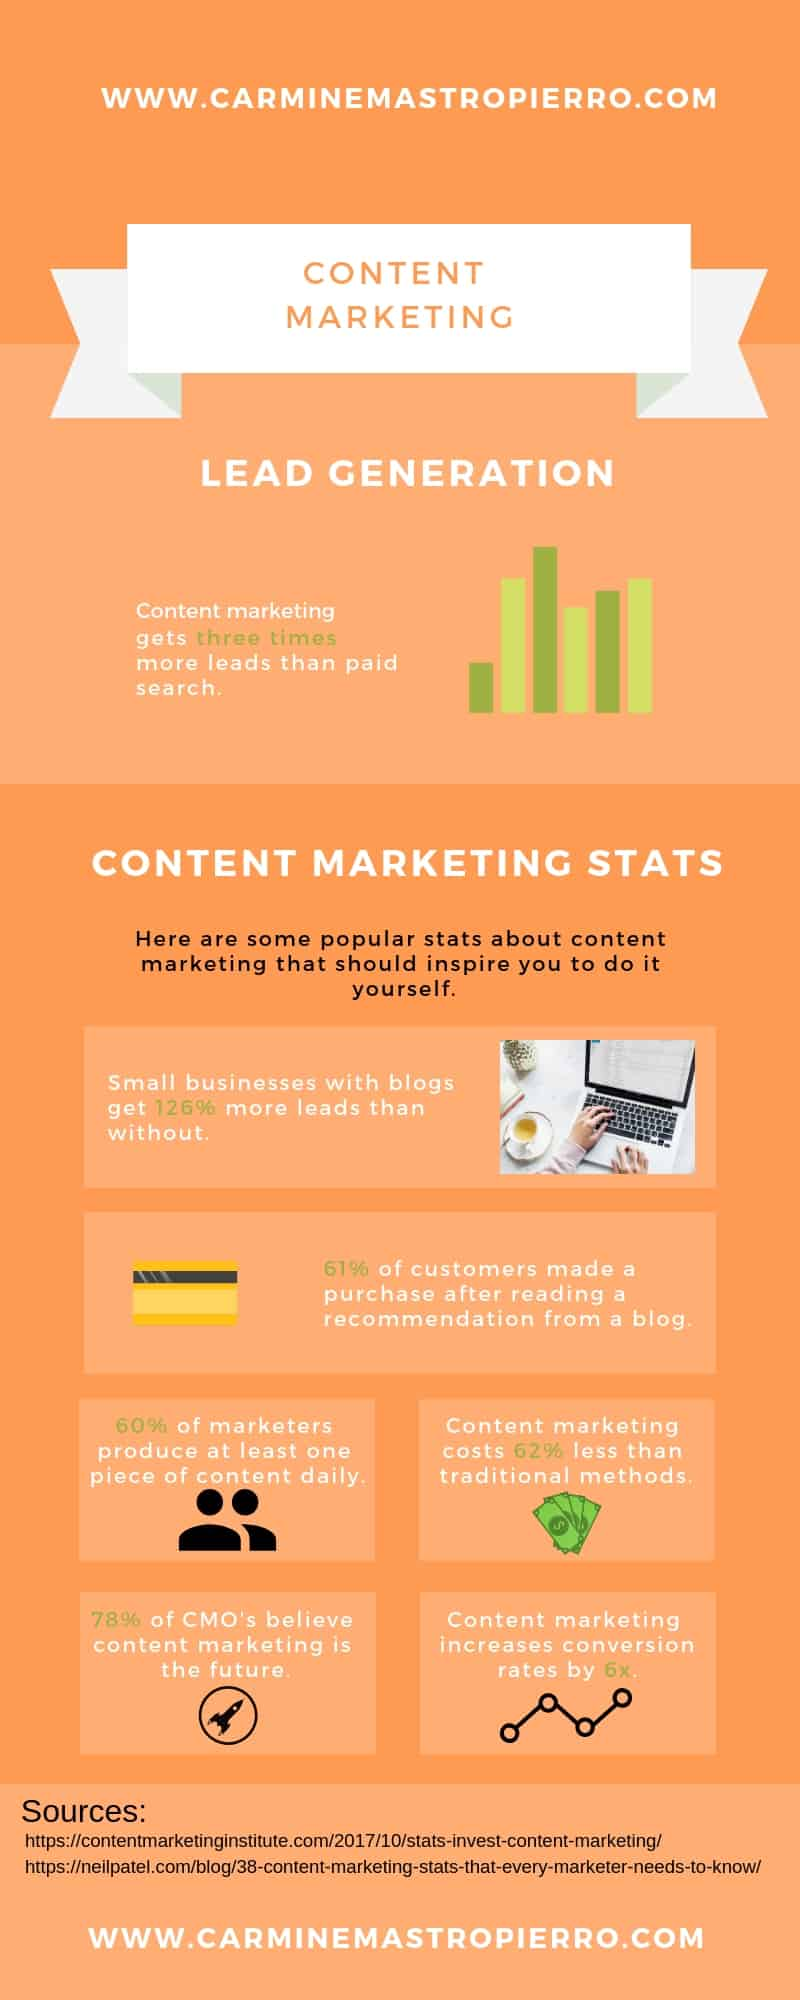 Learn more about how effective content marketing gets the best leads, in this great infographic!